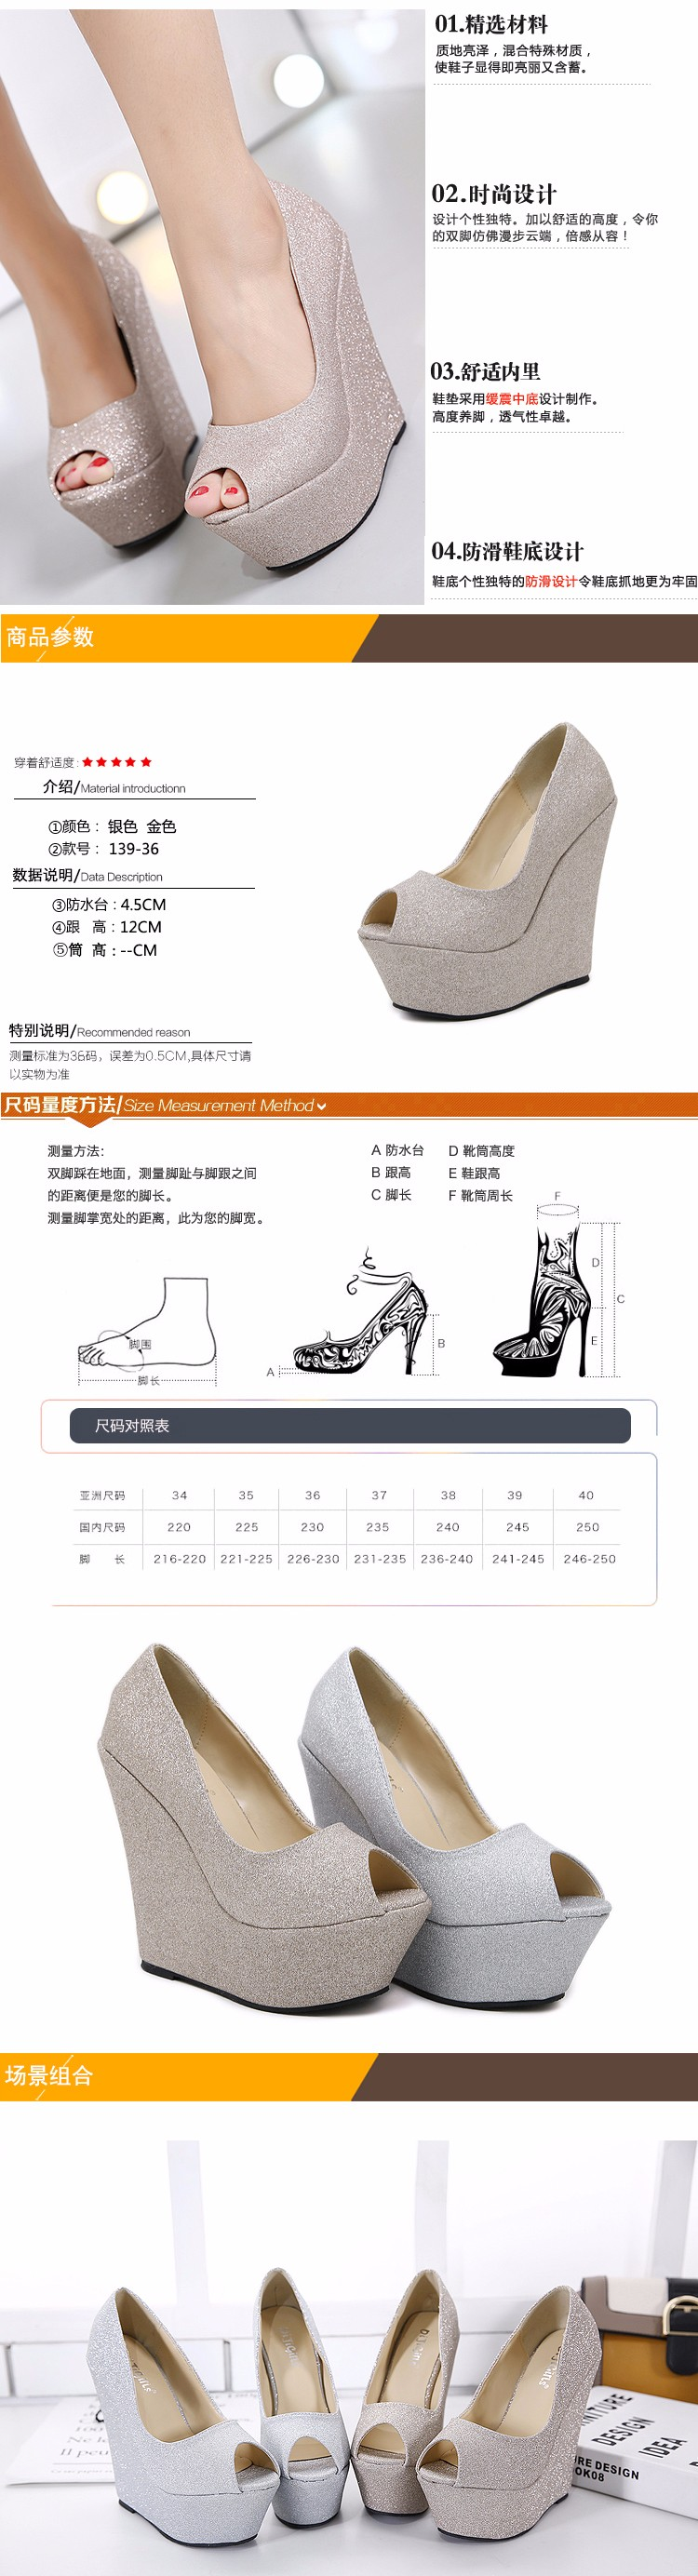 glitter shoes Platform shoes High Heels gold silver wedding Shoes peep toe High Heels Pumps Platform shoes Wedges pumps D925 1